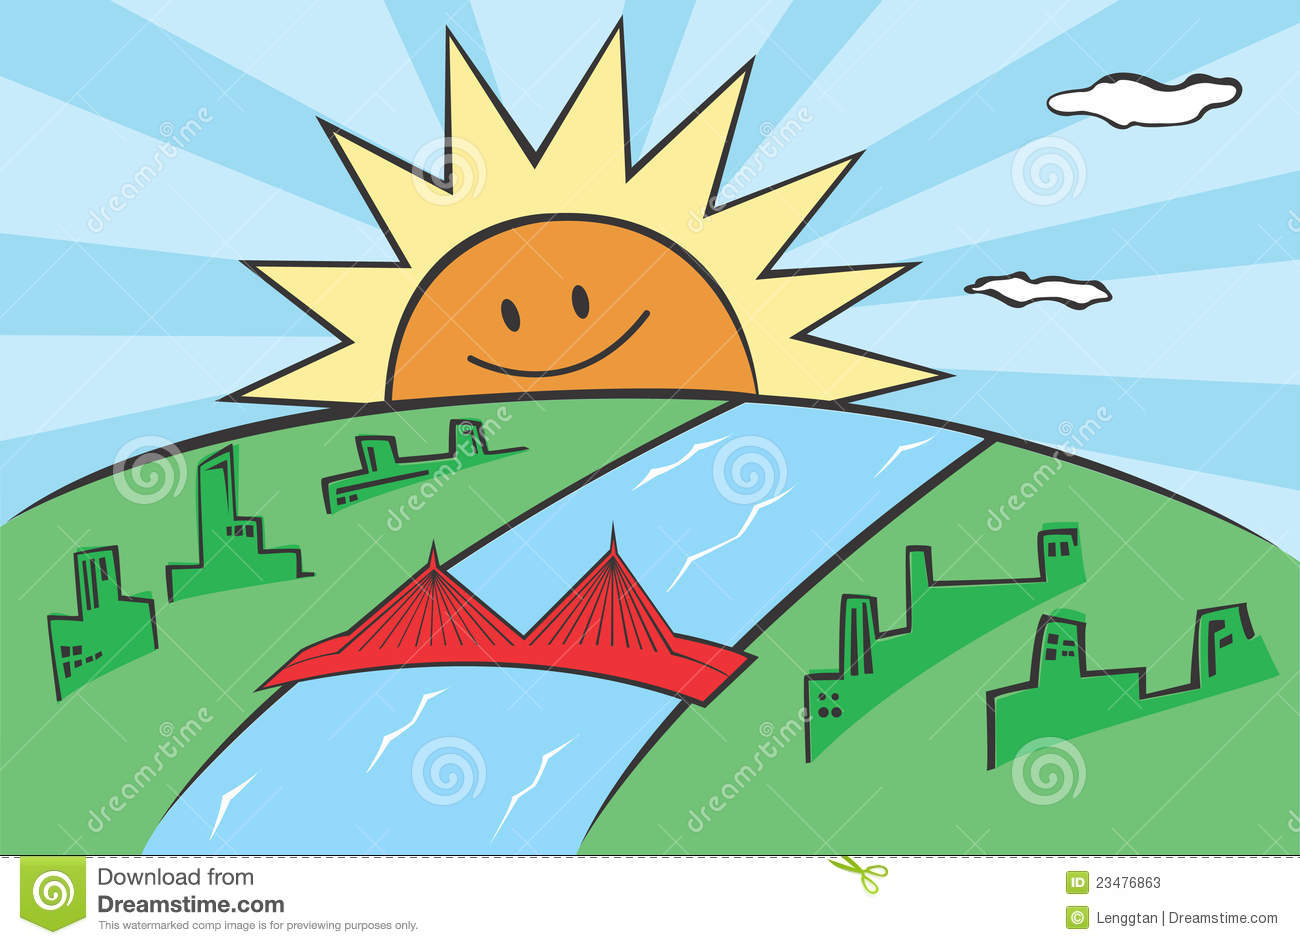 Morning clipart, Morning Transparent FREE for download on.